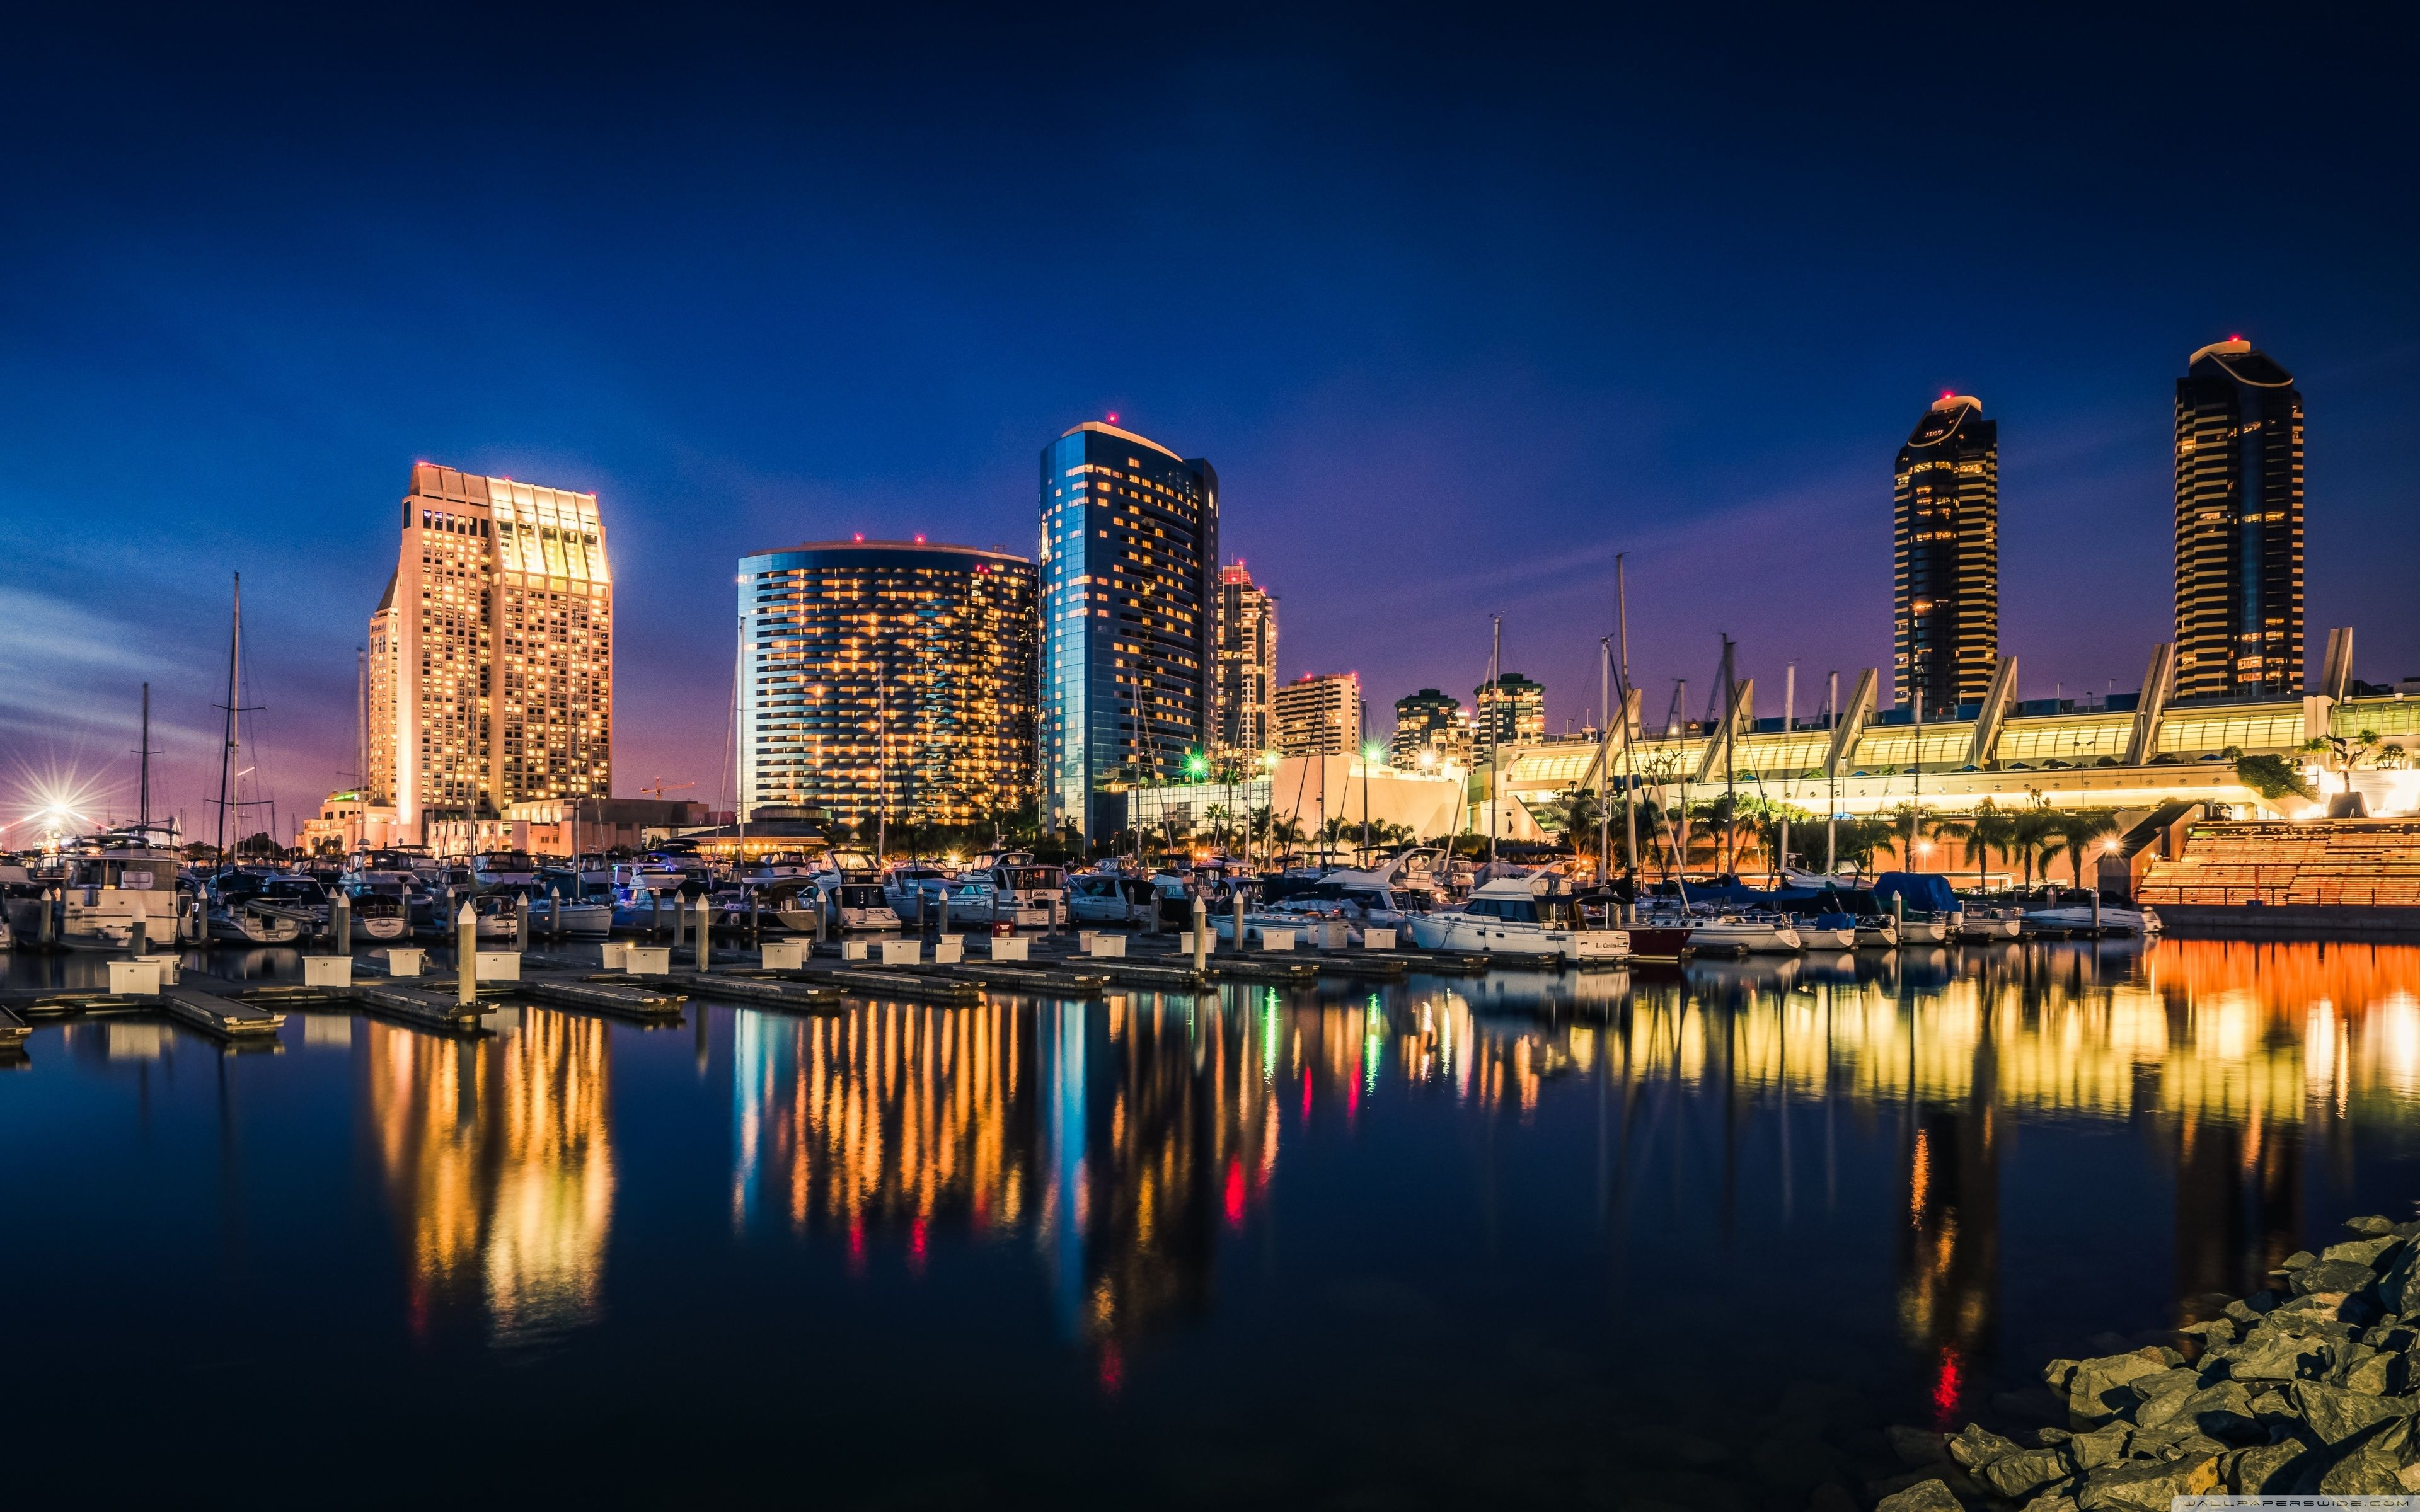 San Diego 4k Wallpapers Top Free San Diego 4k Backgrounds